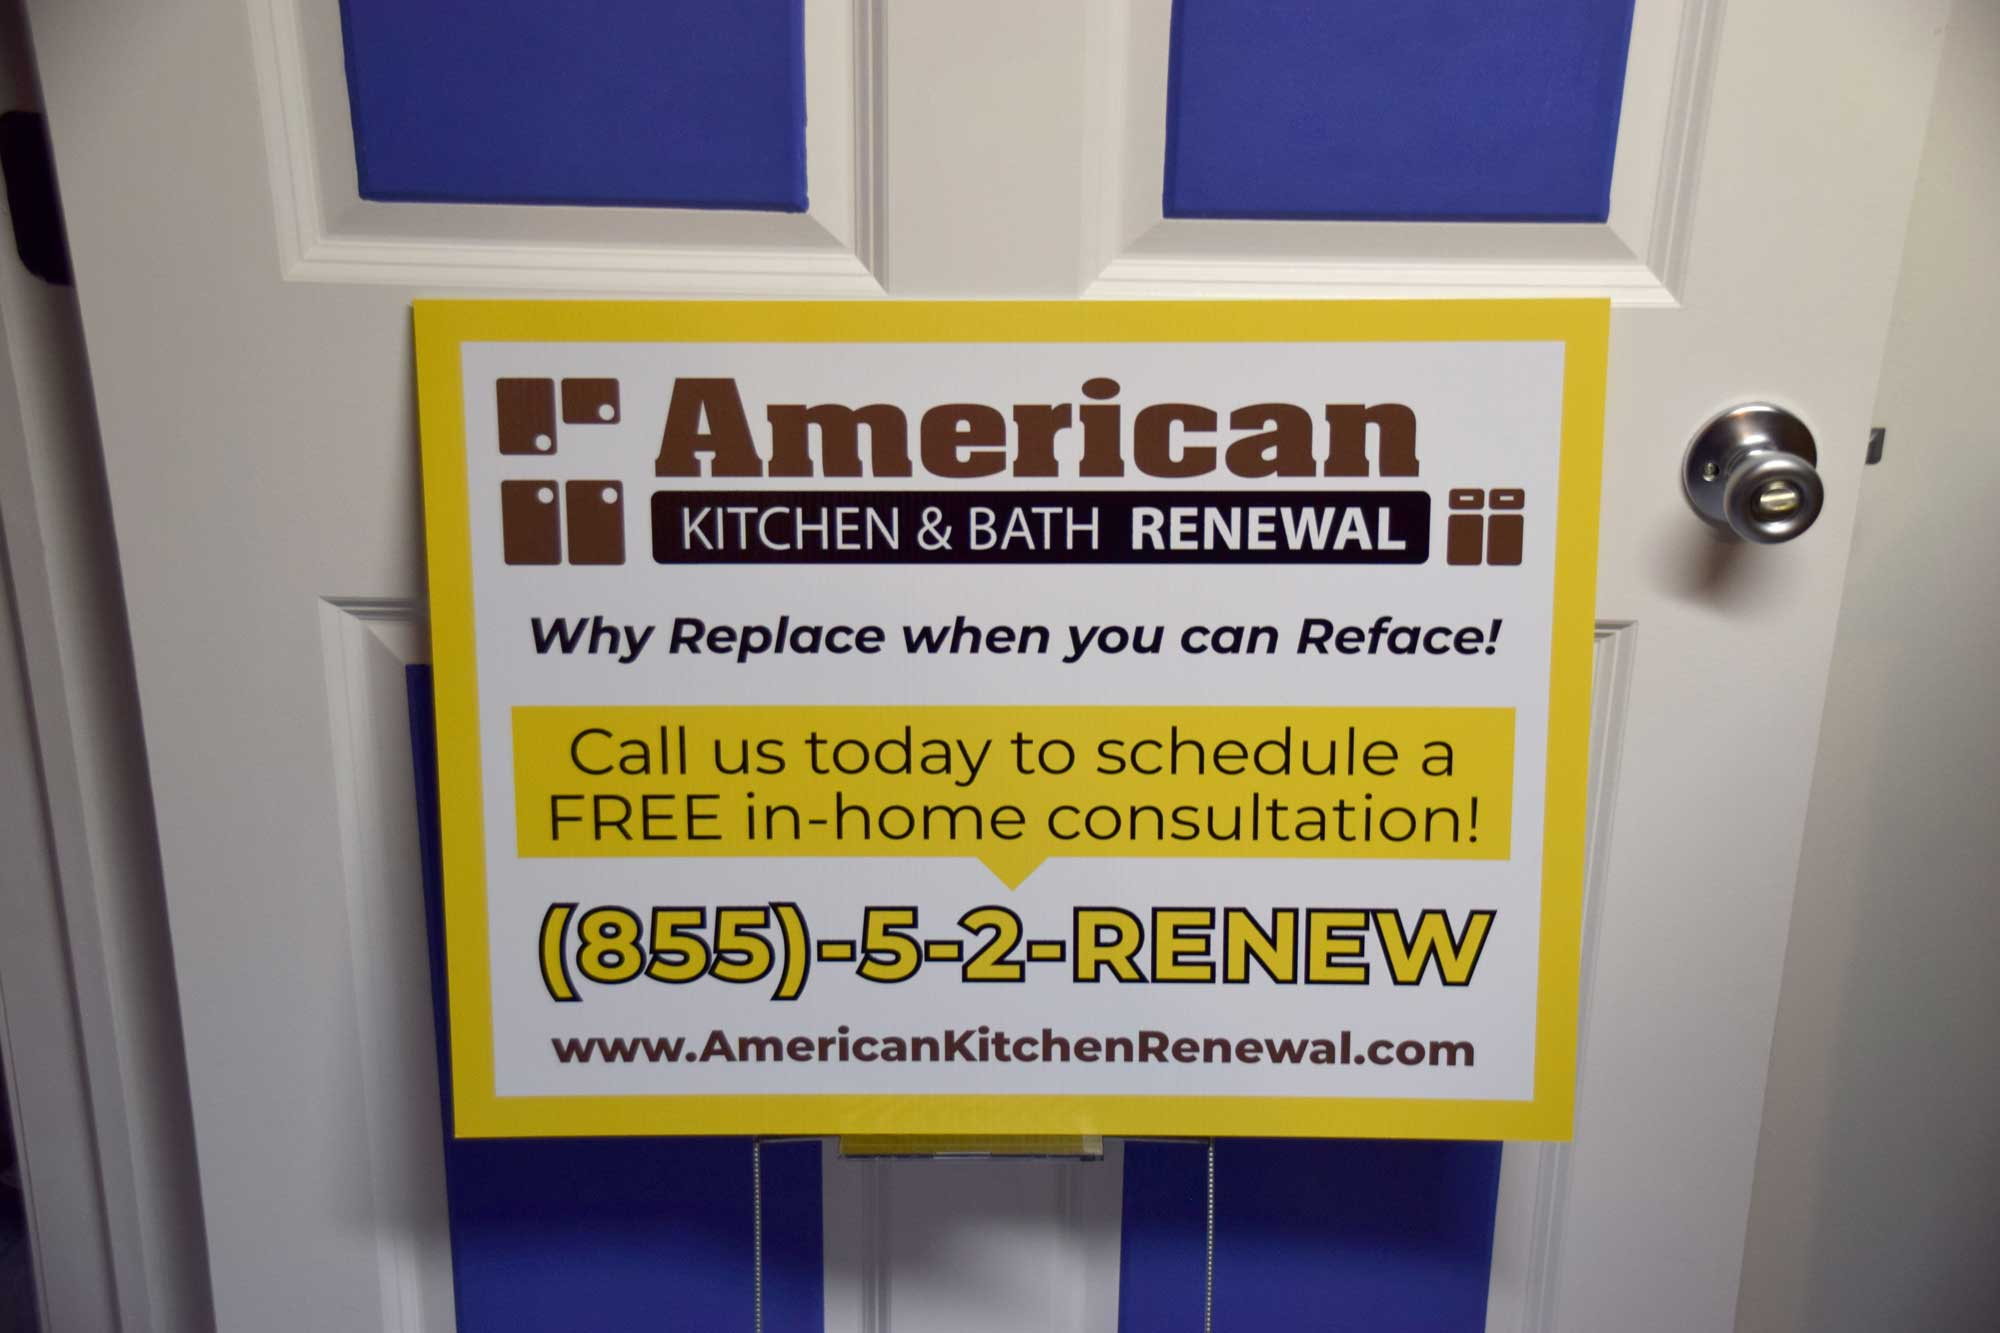 Photo of signage created for American Kitchen and Bath Renewal in Glens Falls, New York.